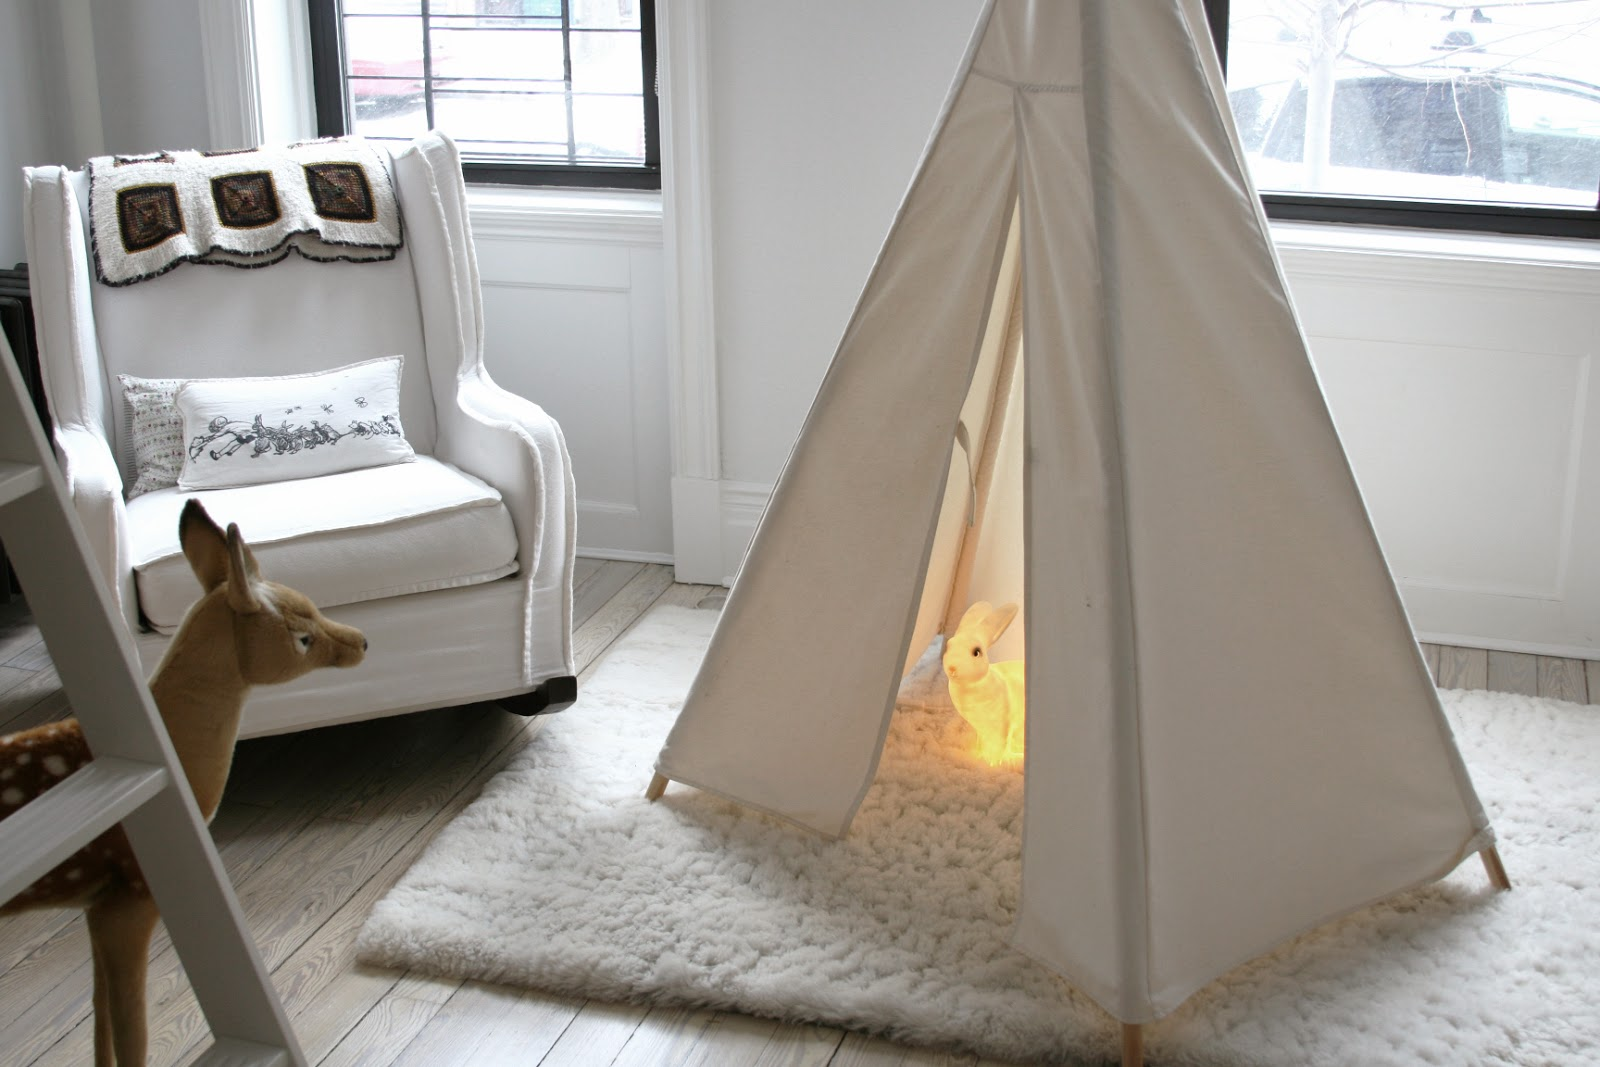 Beautiful shopping guide perch loft bed and classic crib by oeuf teepee by great plains rug and rocker abc carpet and home play kitchen by momoll storage boxes